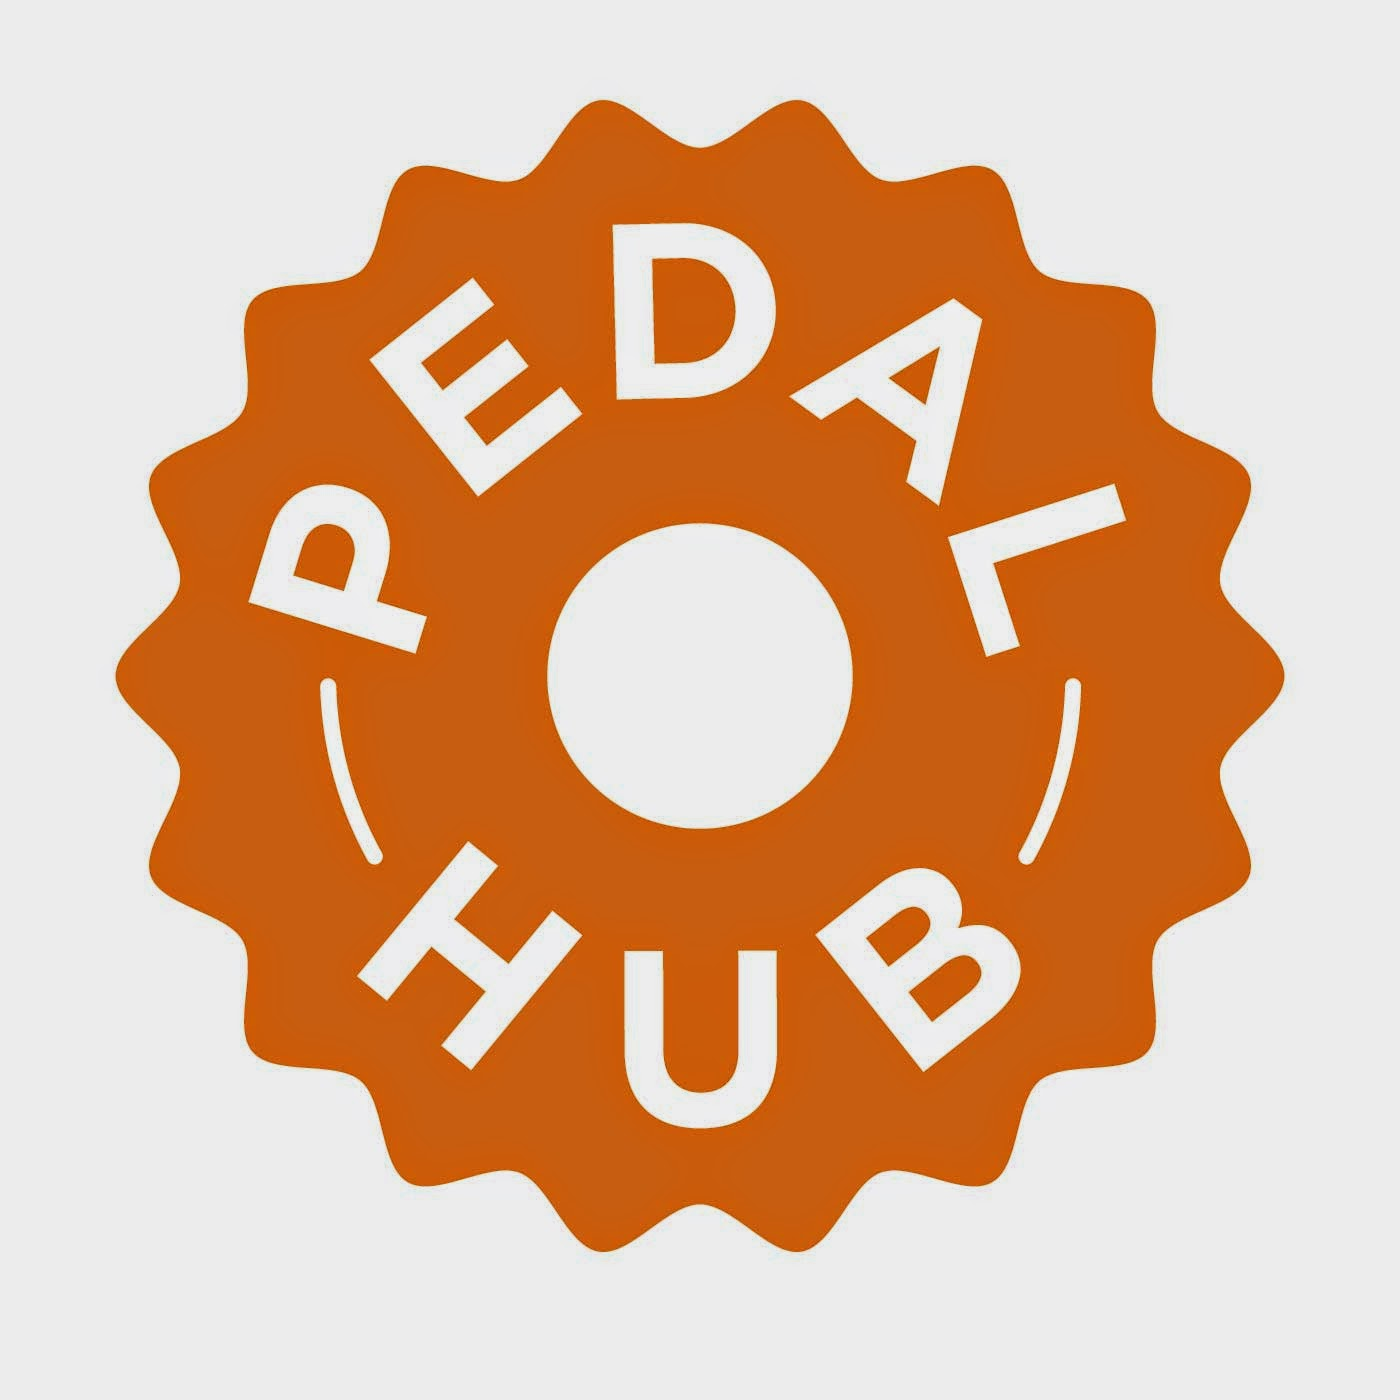 http://www.mprnews.org/topic/pedal-hub